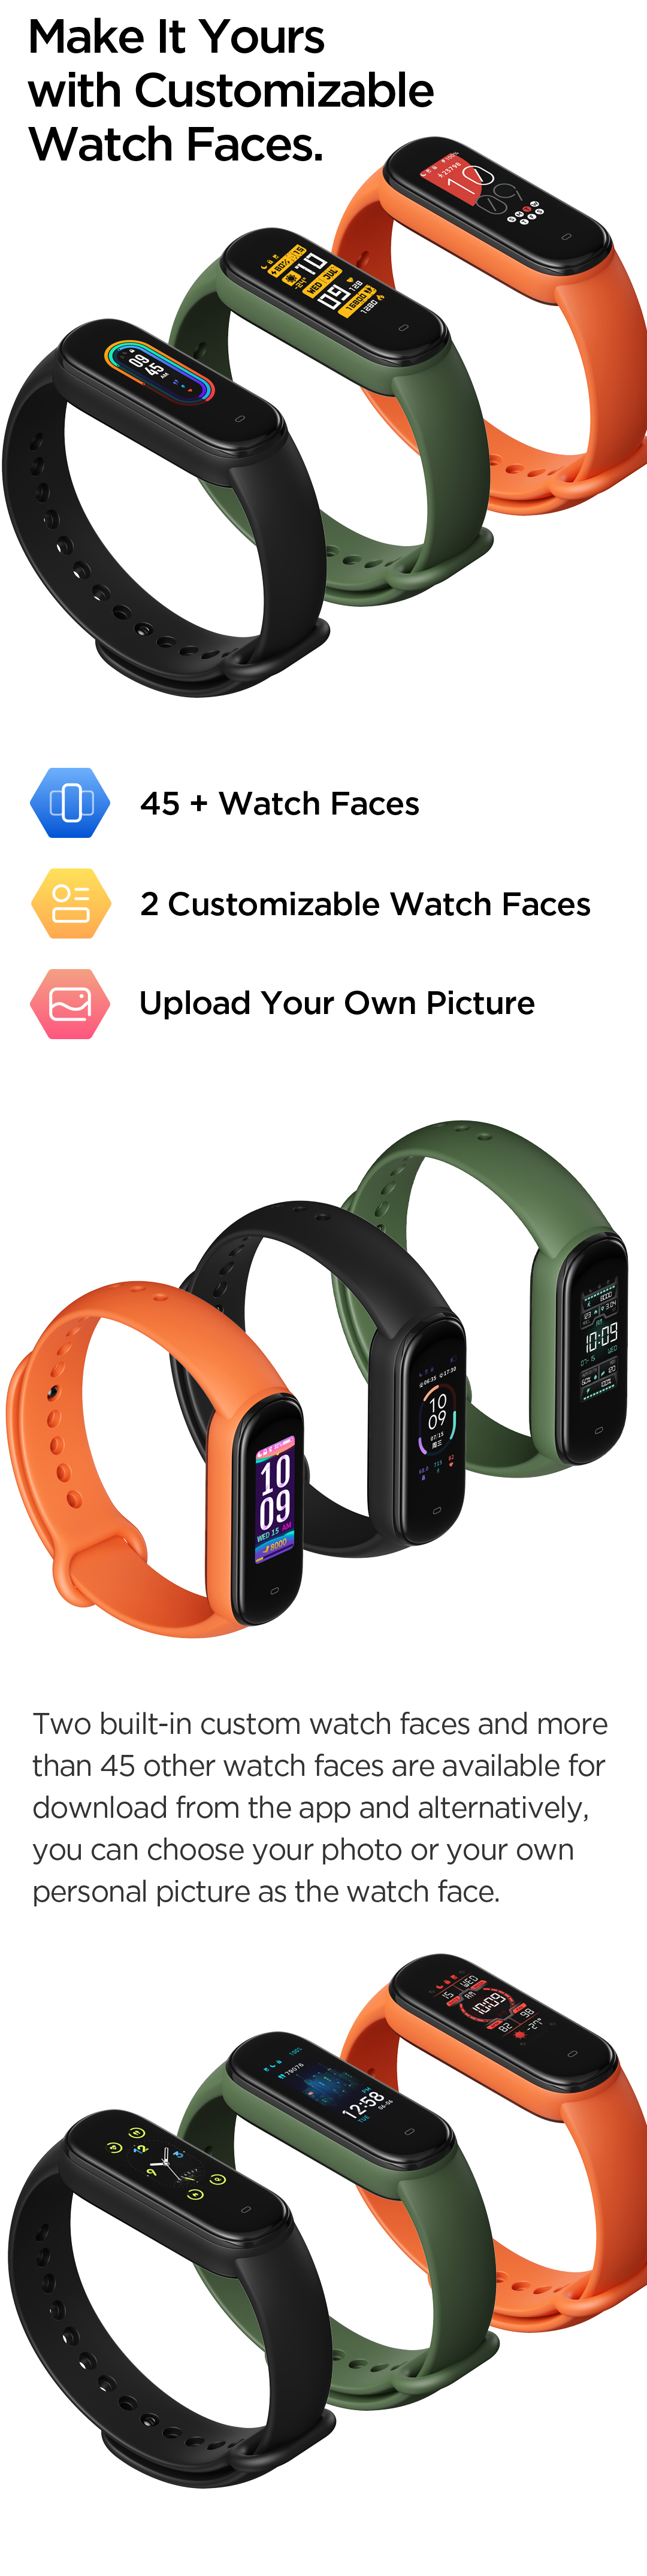 Customizable Band Watch Face